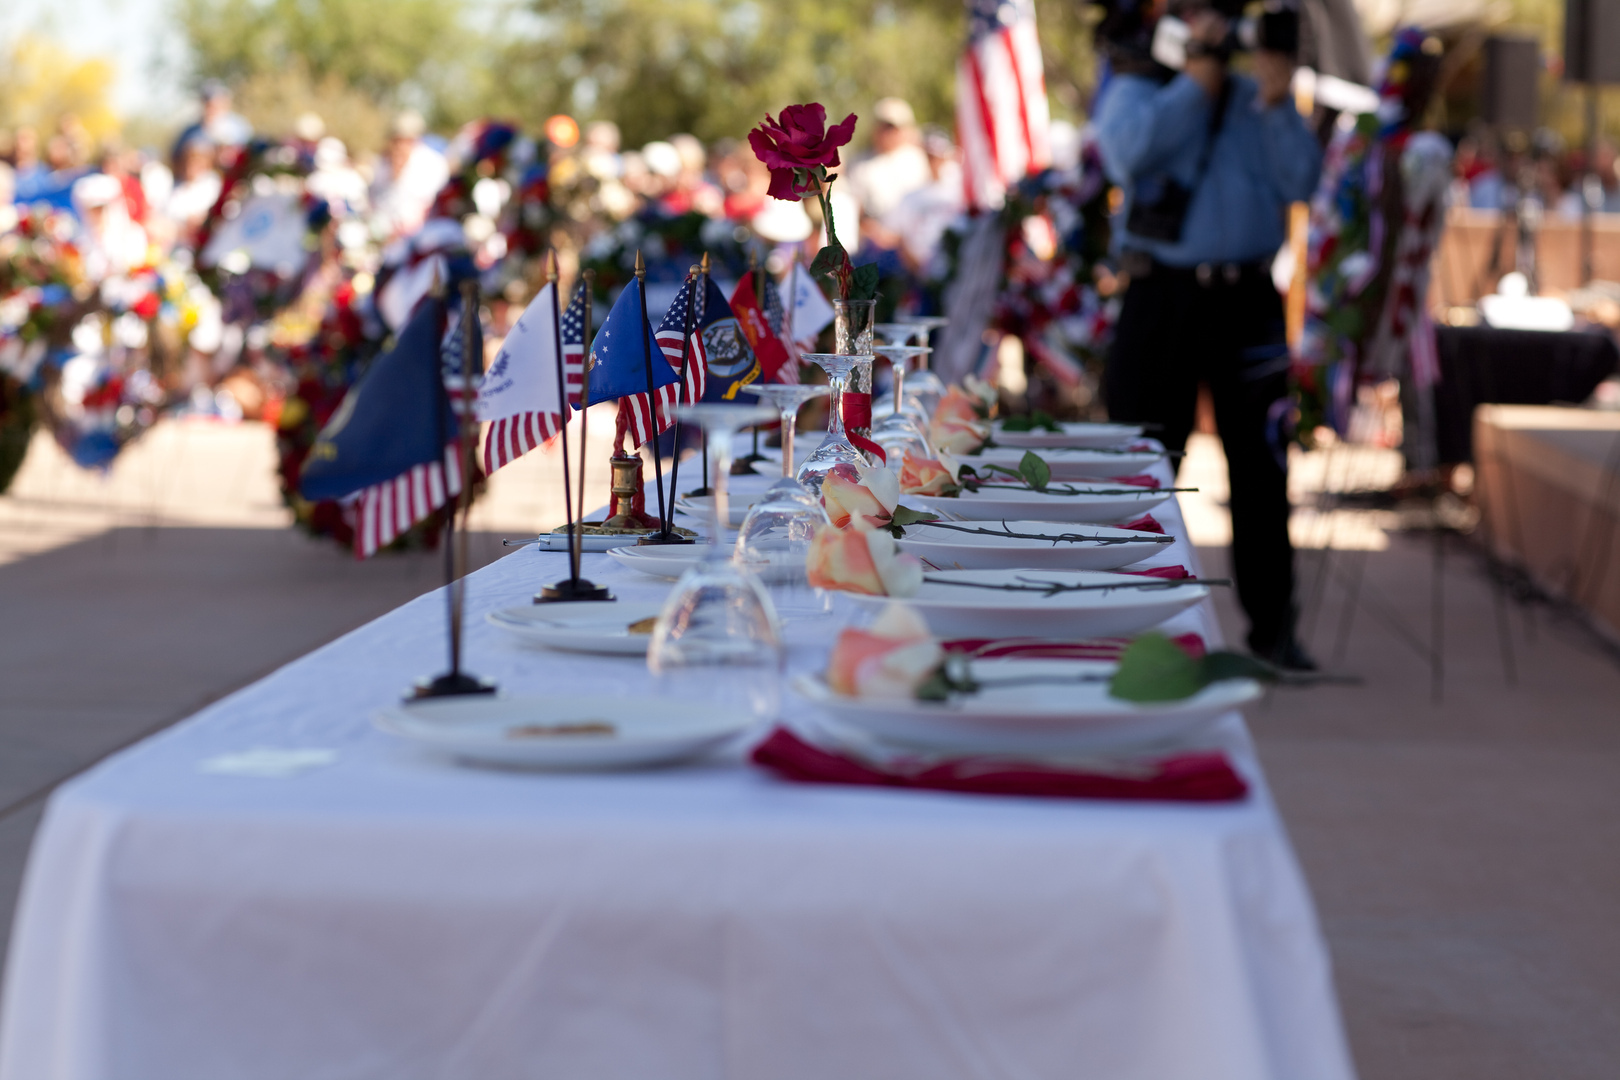 Rememberance Table